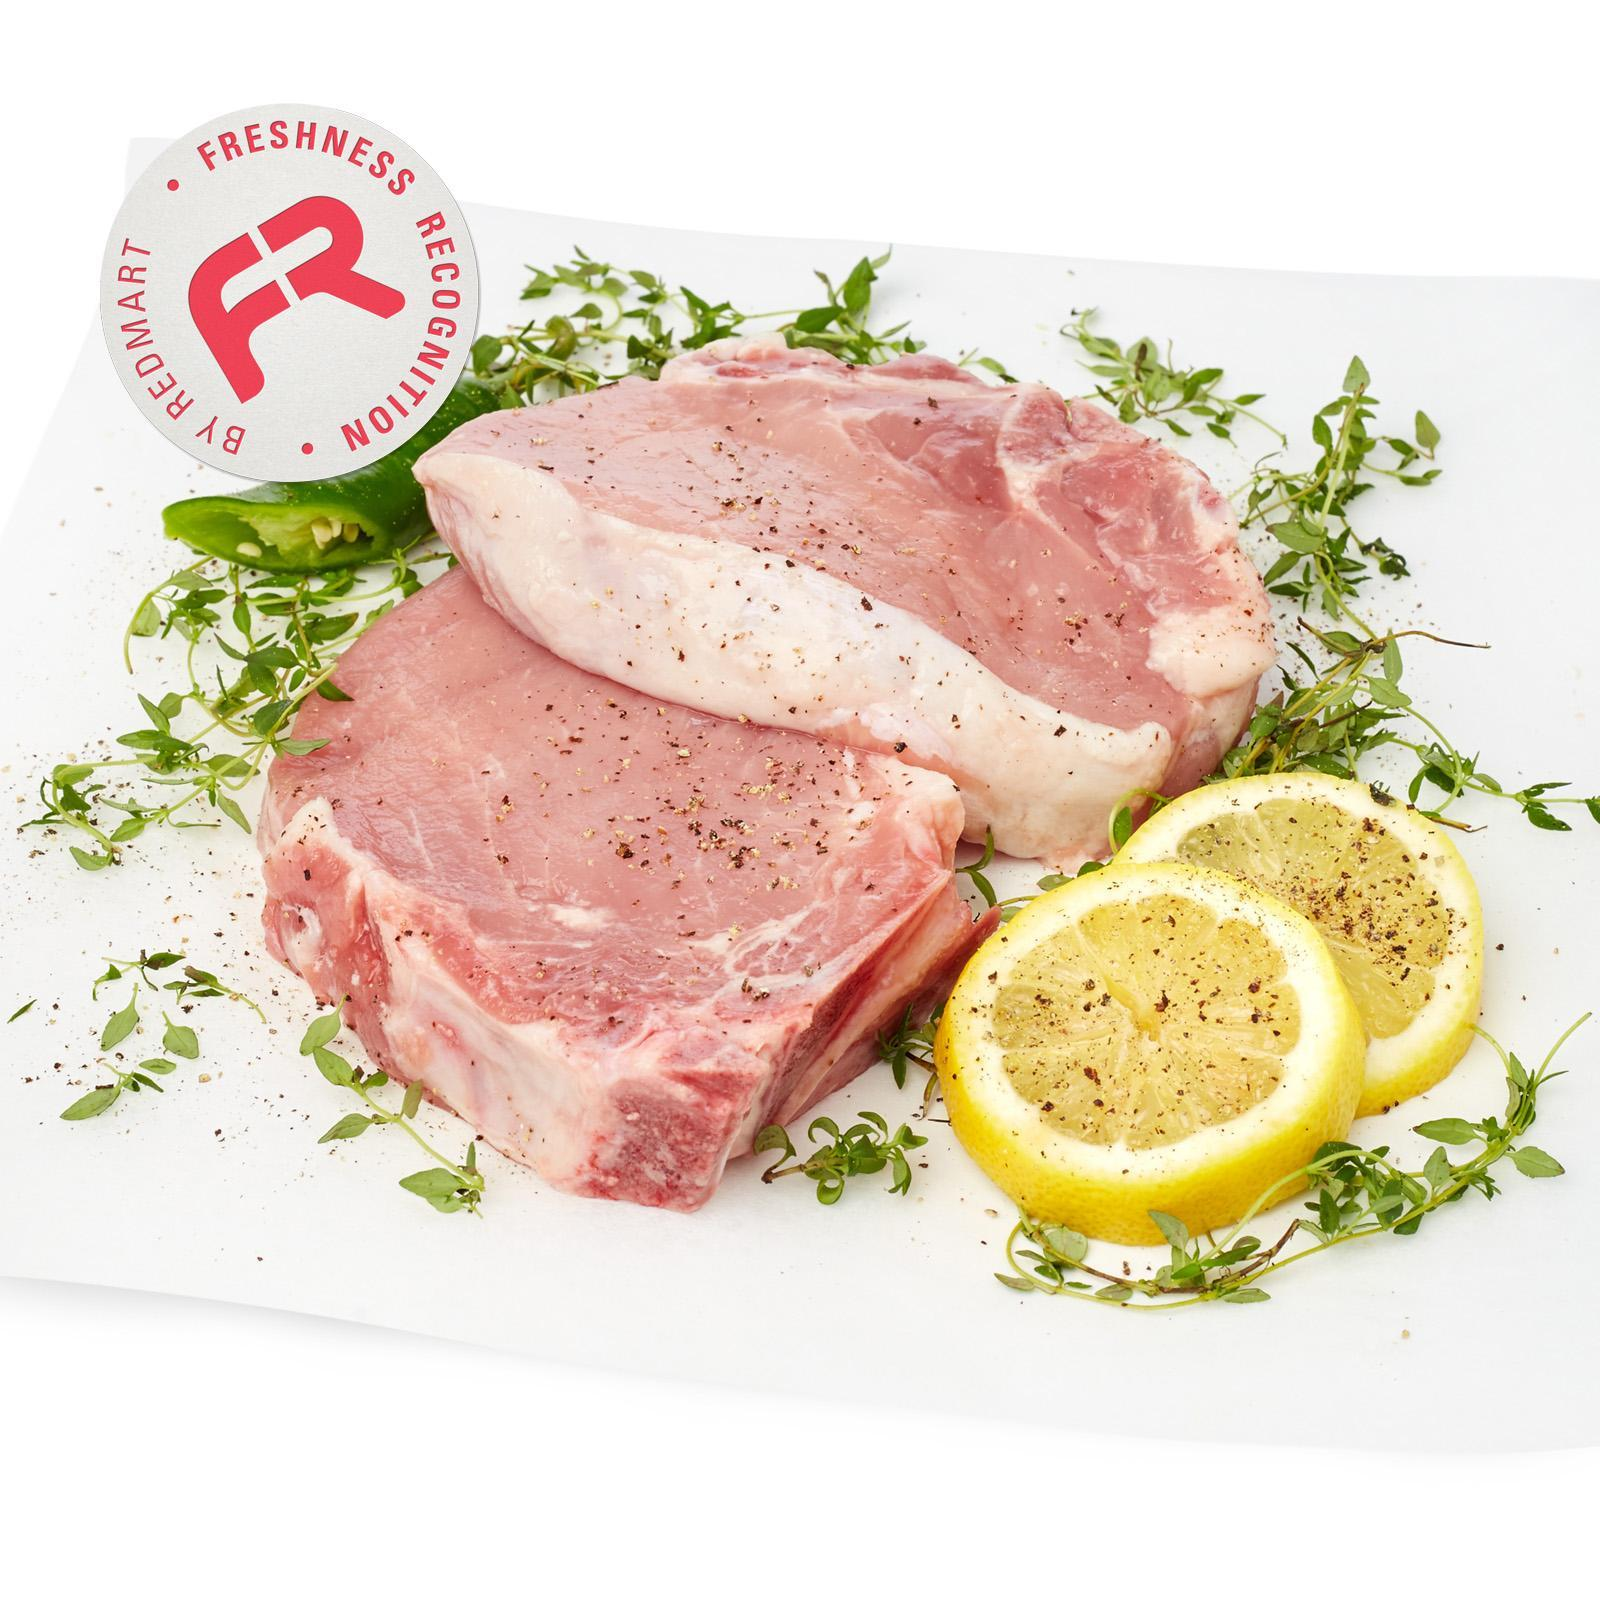 Meat Affair Pork Loin Bone In Chop - Australia By Redmart.